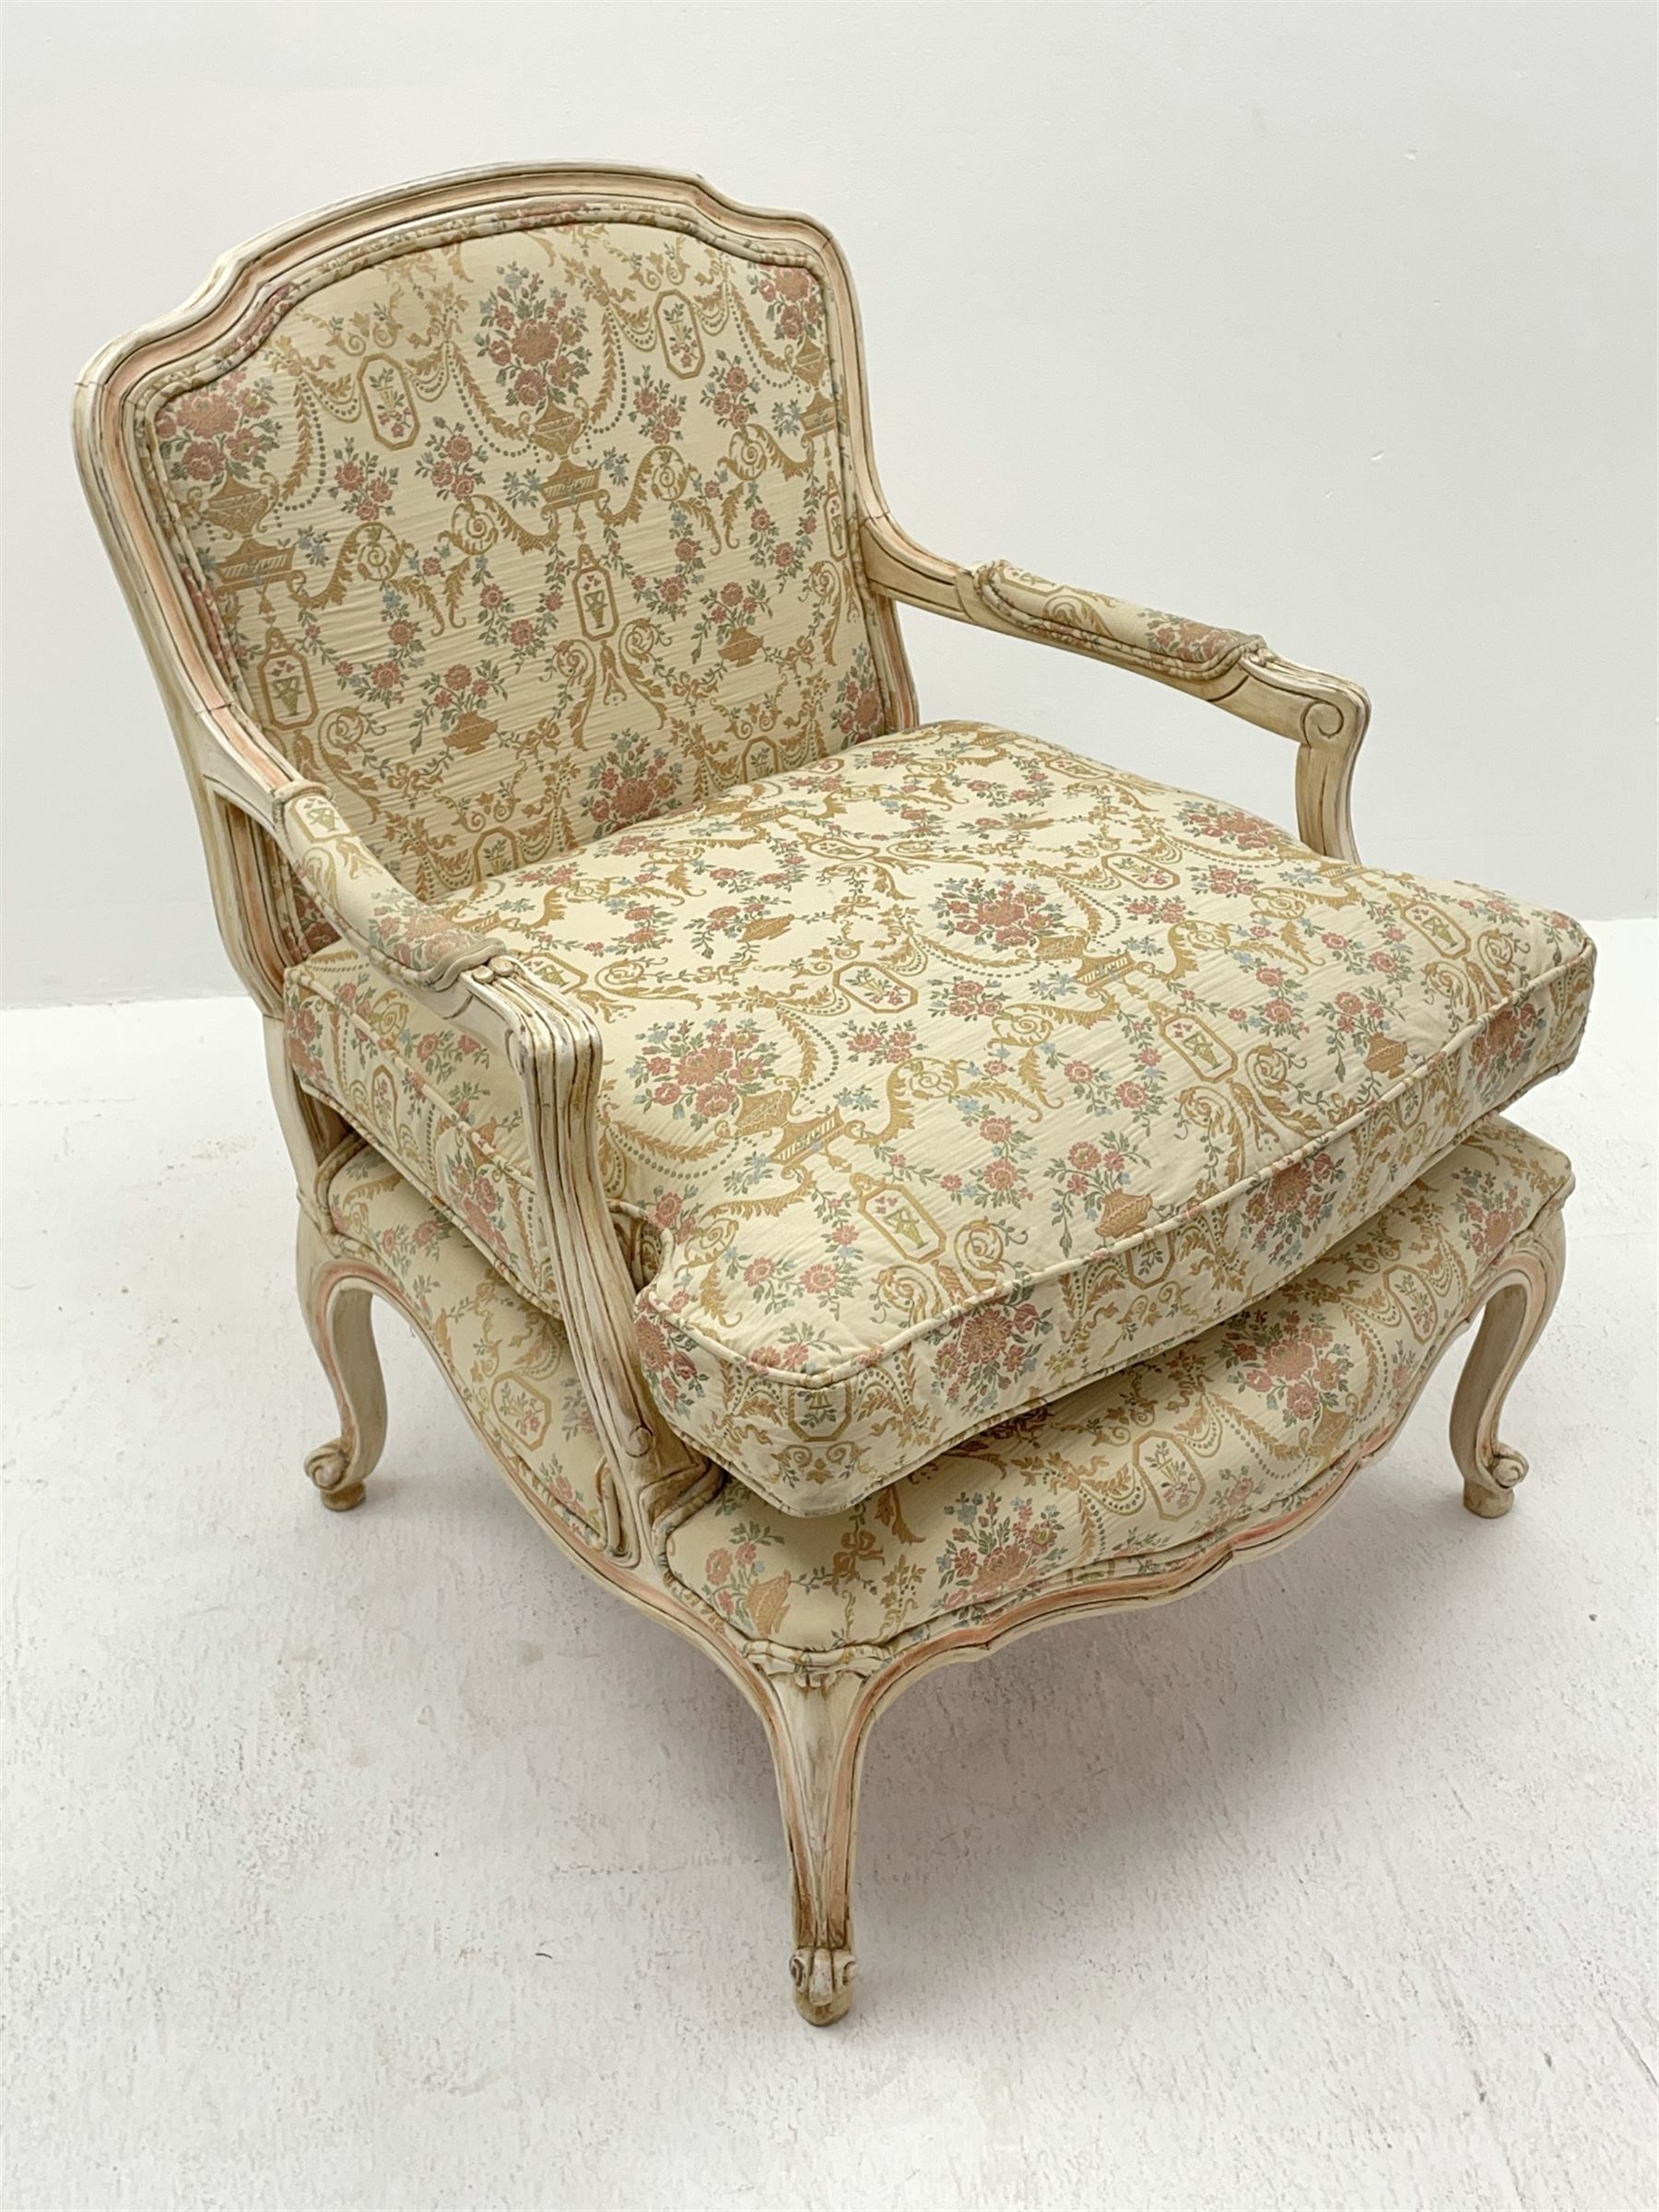 French style armchair - Image 3 of 6